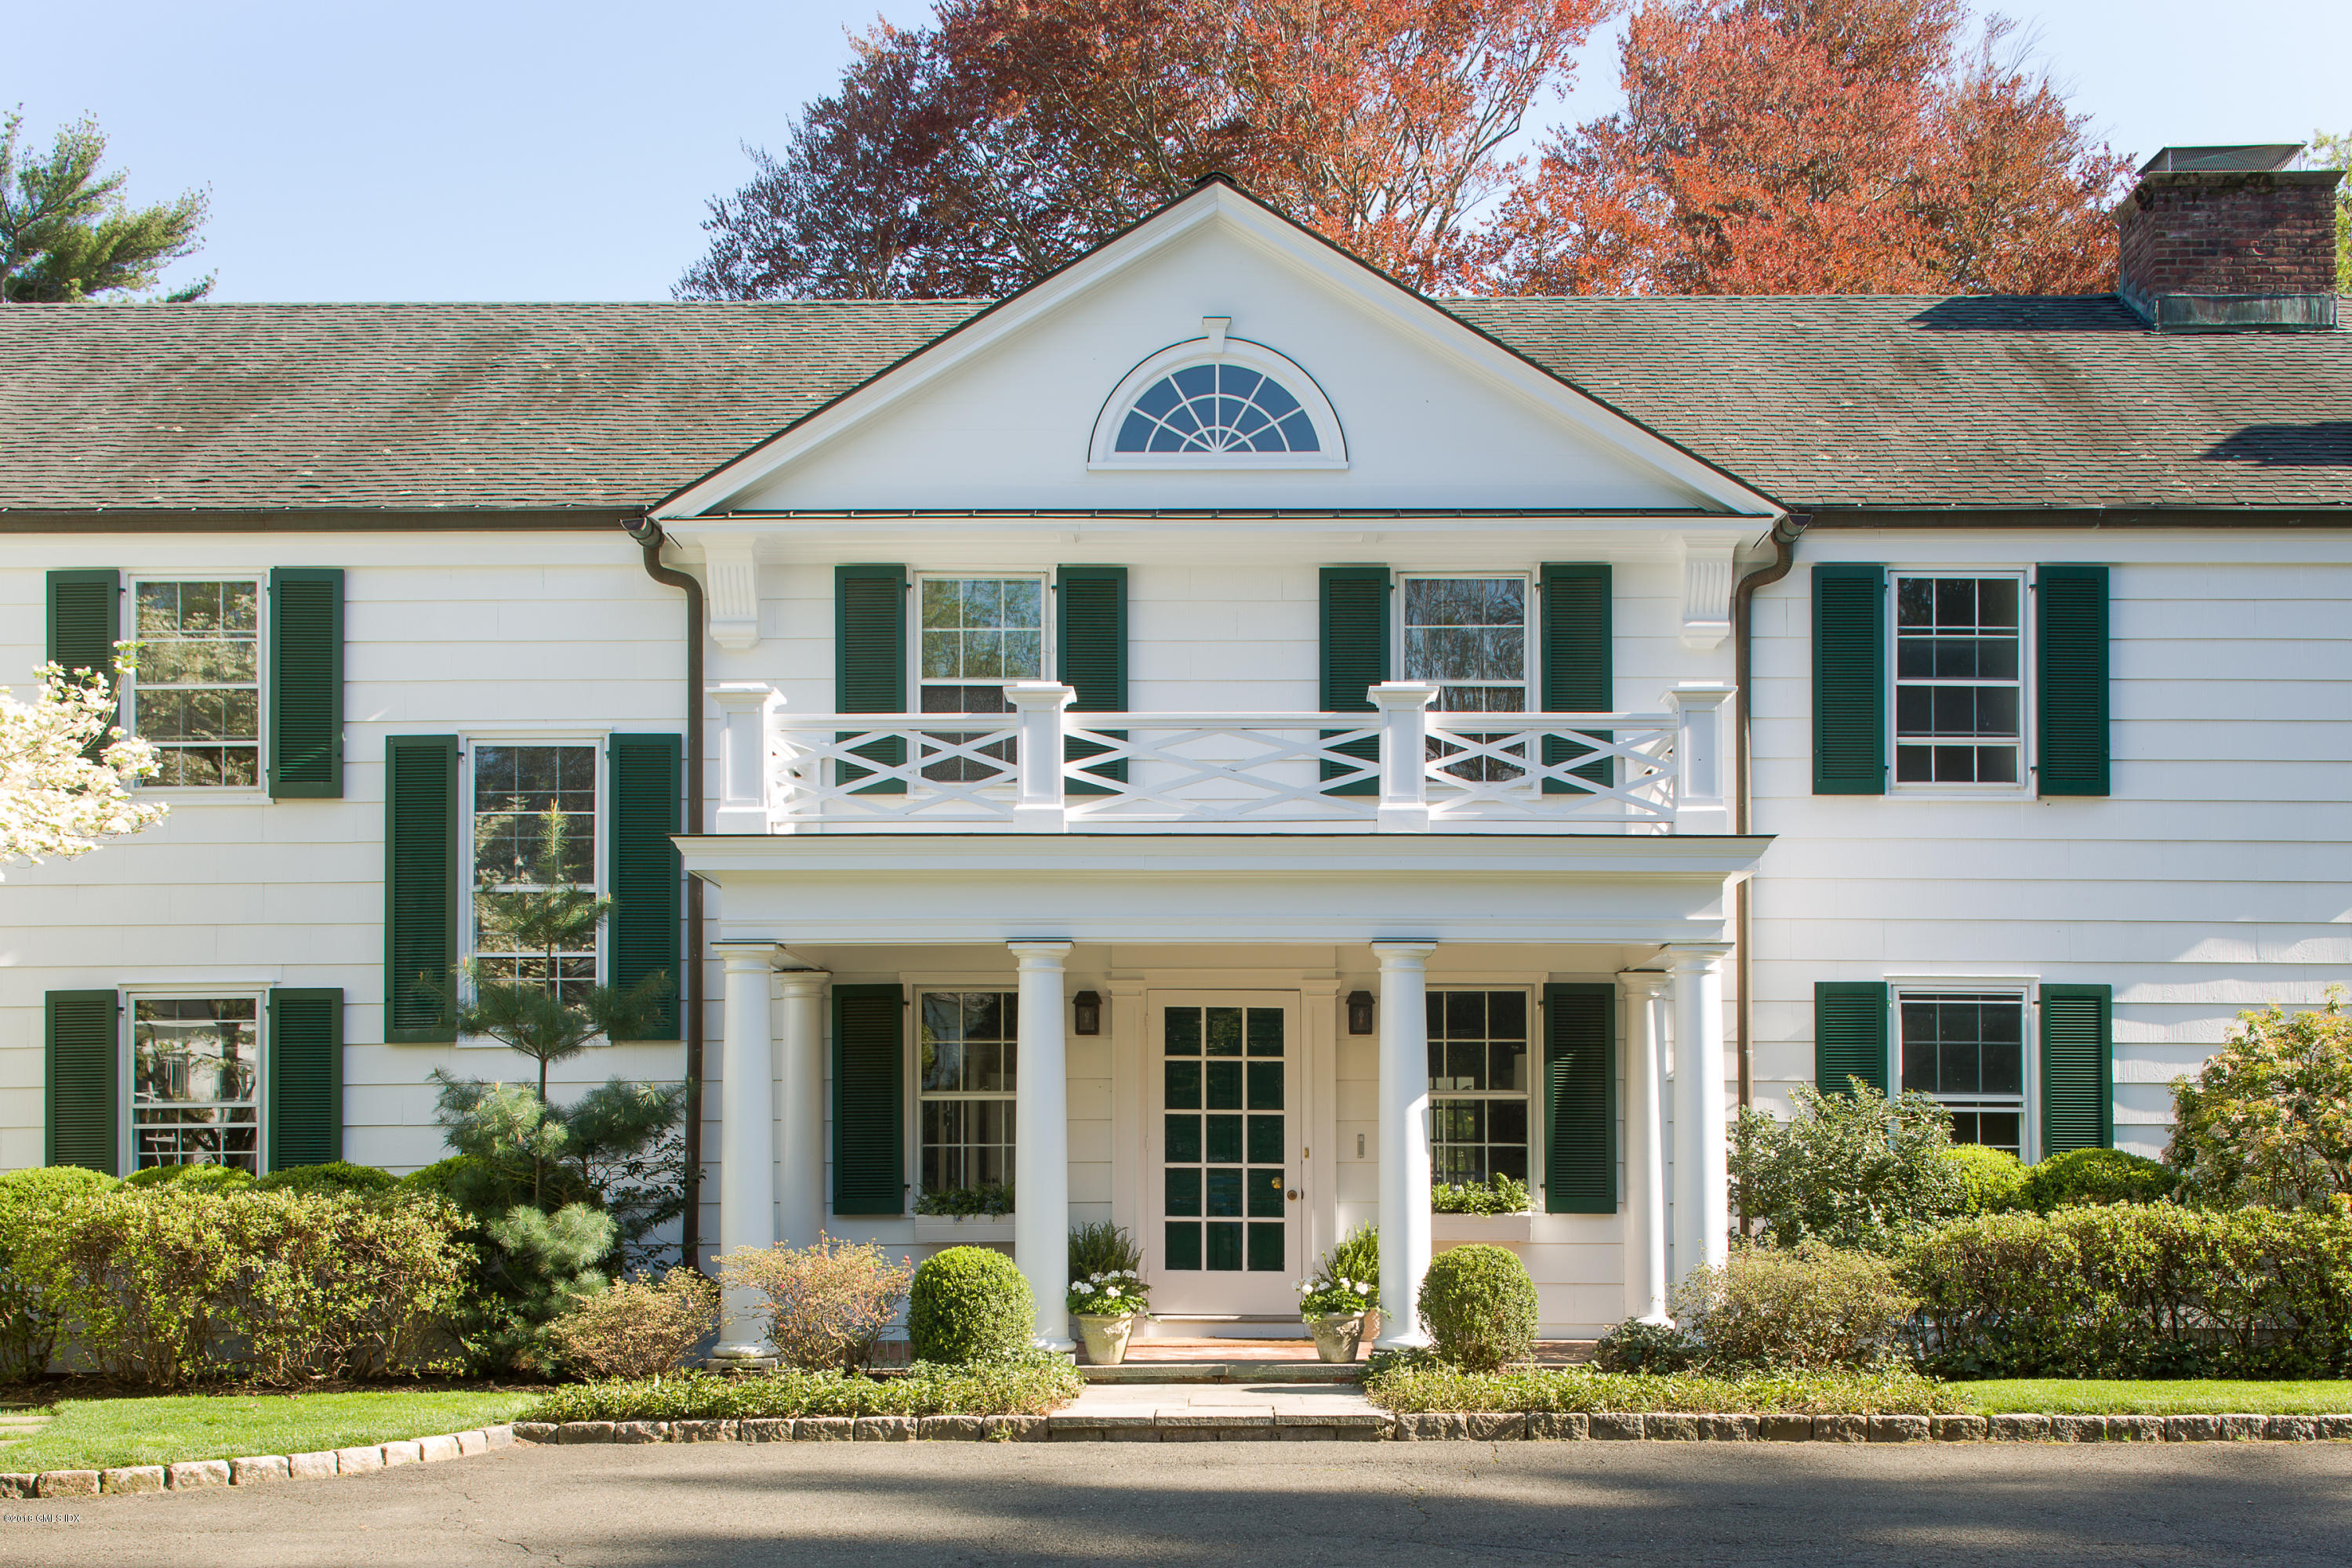 511 Lake Avenue,Greenwich,Connecticut 06830,8 Bedrooms Bedrooms,10 BathroomsBathrooms,Single family,Lake,106974